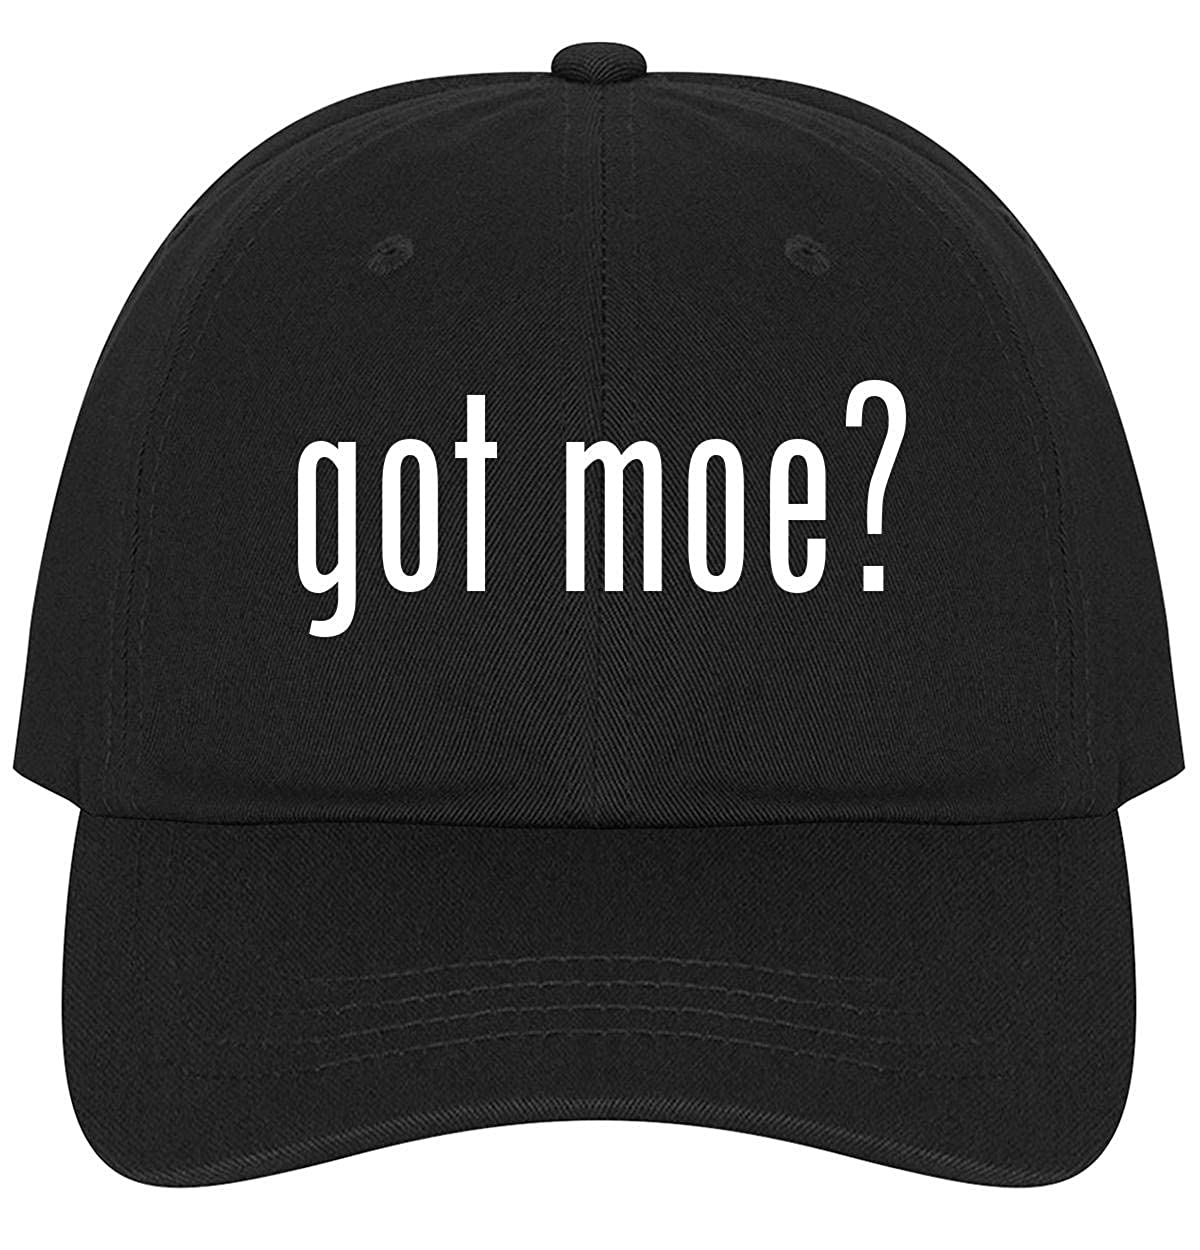 The Town Butler got moe? - A Nice Comfortable Adjustable Dad ...